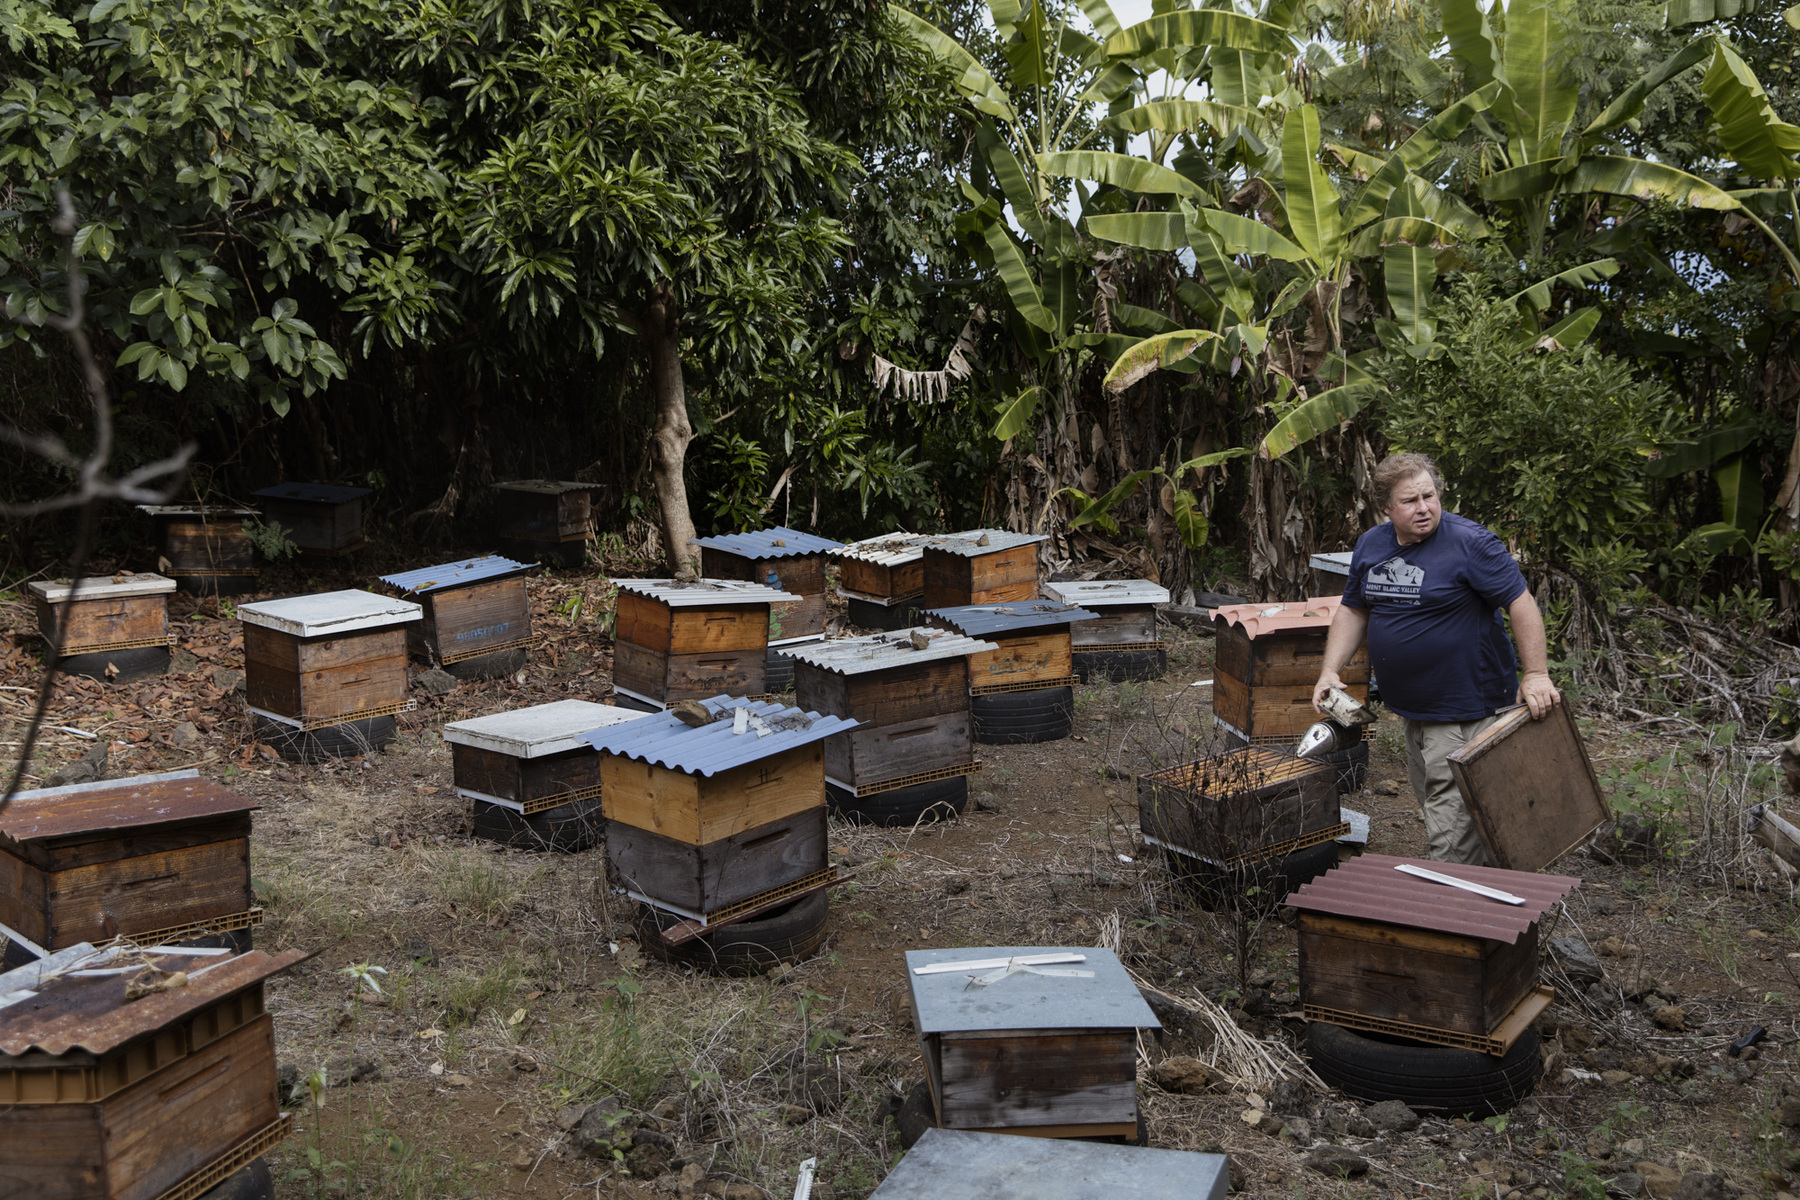 Adrienne Surprenant - 28/04/2019. Petite Isle, La Réunion (France) - Jimmy Hoareau, beekeeper, reportedly lost 85 of his hives due to mosquito control by the ARS about 50 metres from his bees. The problem is that the products used do not only kill mosquitoes. Wildlife renewal takes time. Many people say that two weeks after the LRA they have more mosquitoes because all their predators are dead too. We are told that this is a case of necessity, that there are deaths and that action must be taken, but I do not understand why in agriculture we are trying to reduce the use of insecticides when they are spraying everywhere. We are told that we must choose life or dengue fever, but there must be other solutions. There are researchers who have salaries for this, he says